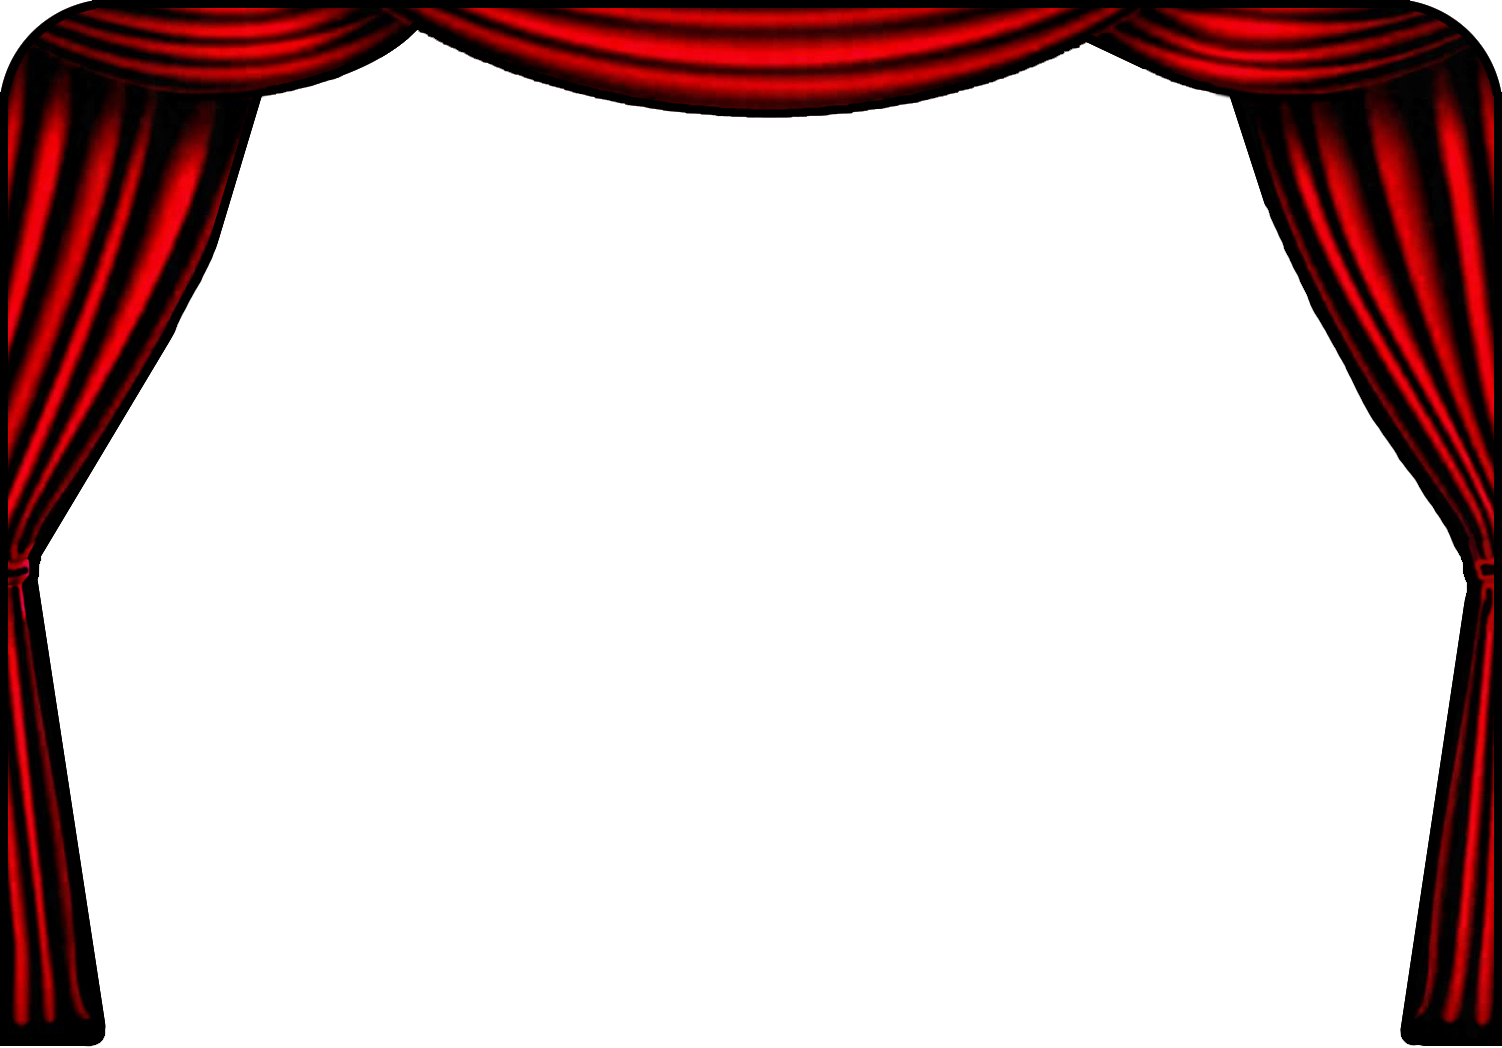 Goochland Community Theatre